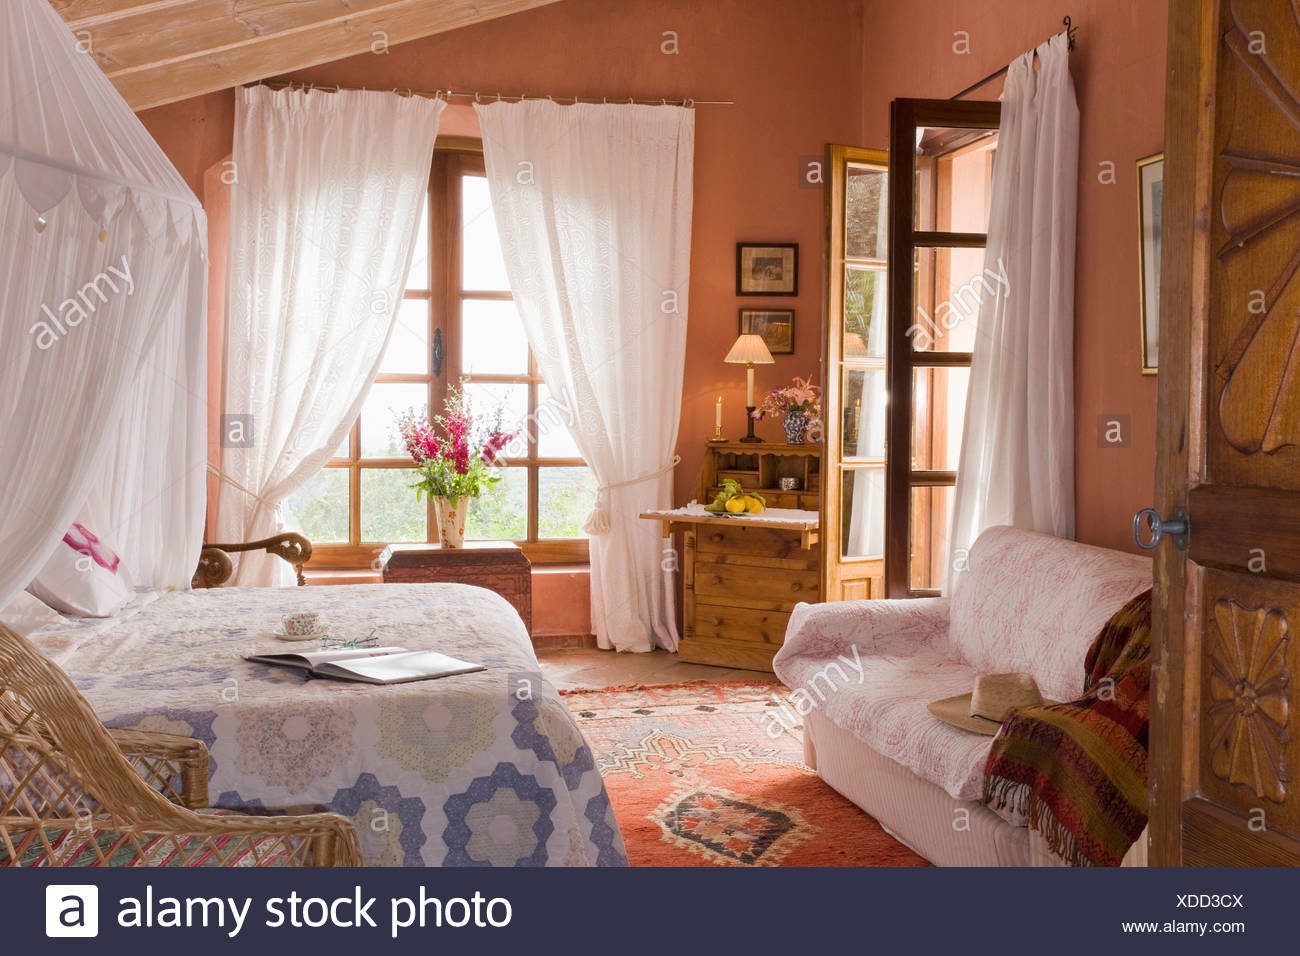 White Mosquito Net Above Bed With Patchwork Quilt In Terracotta